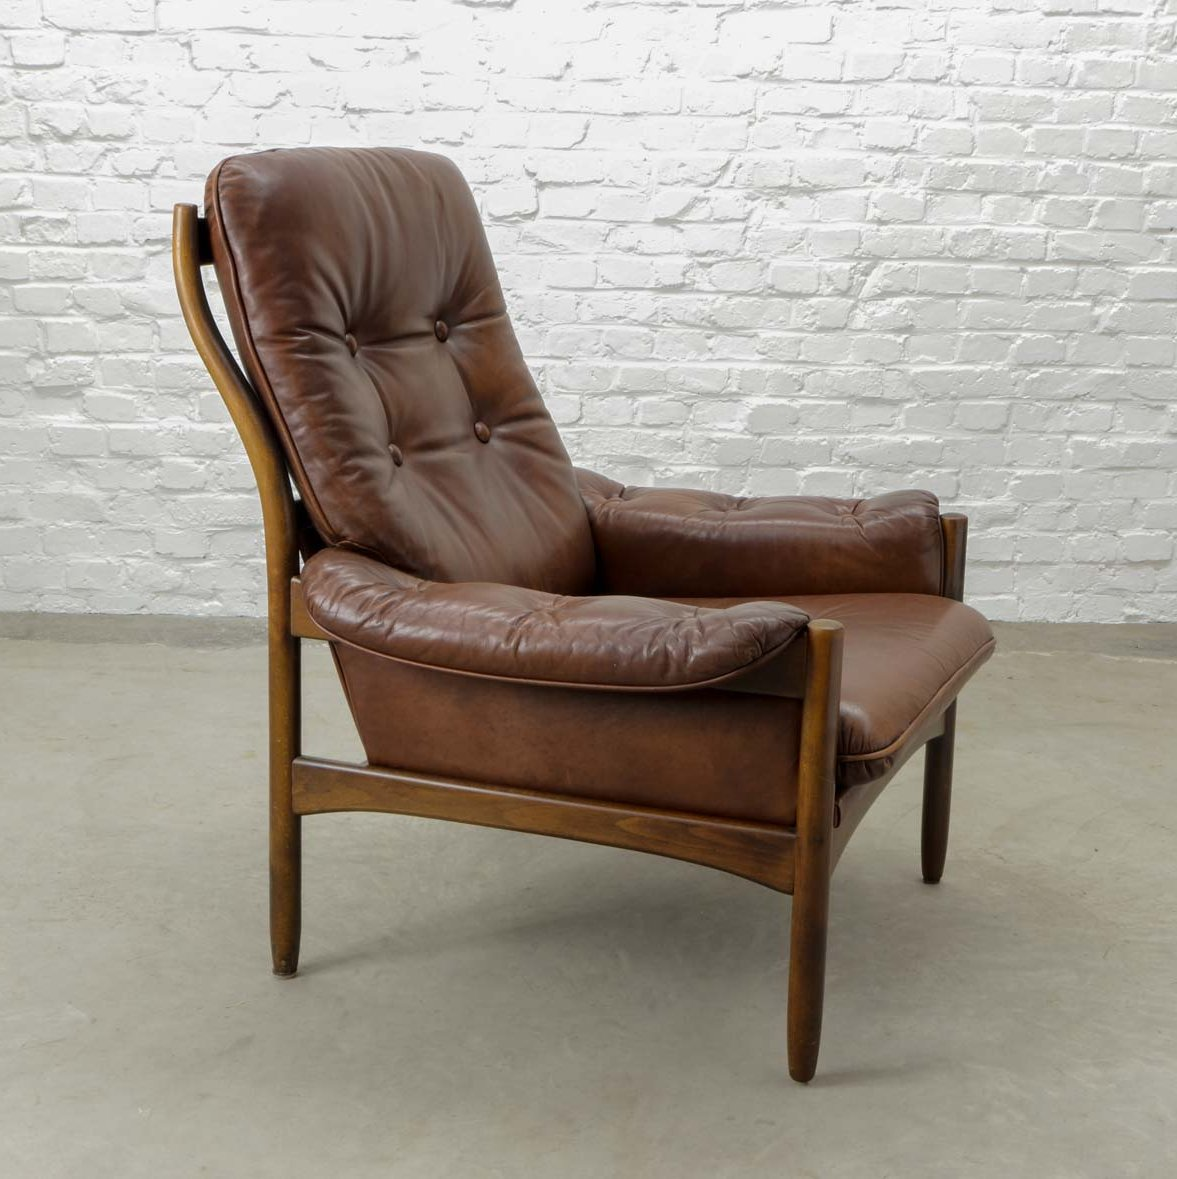 Prime Scandinavian Design Chestnut Leather Lounge Chair By G Mobel Sweden 1960S Cjindustries Chair Design For Home Cjindustriesco